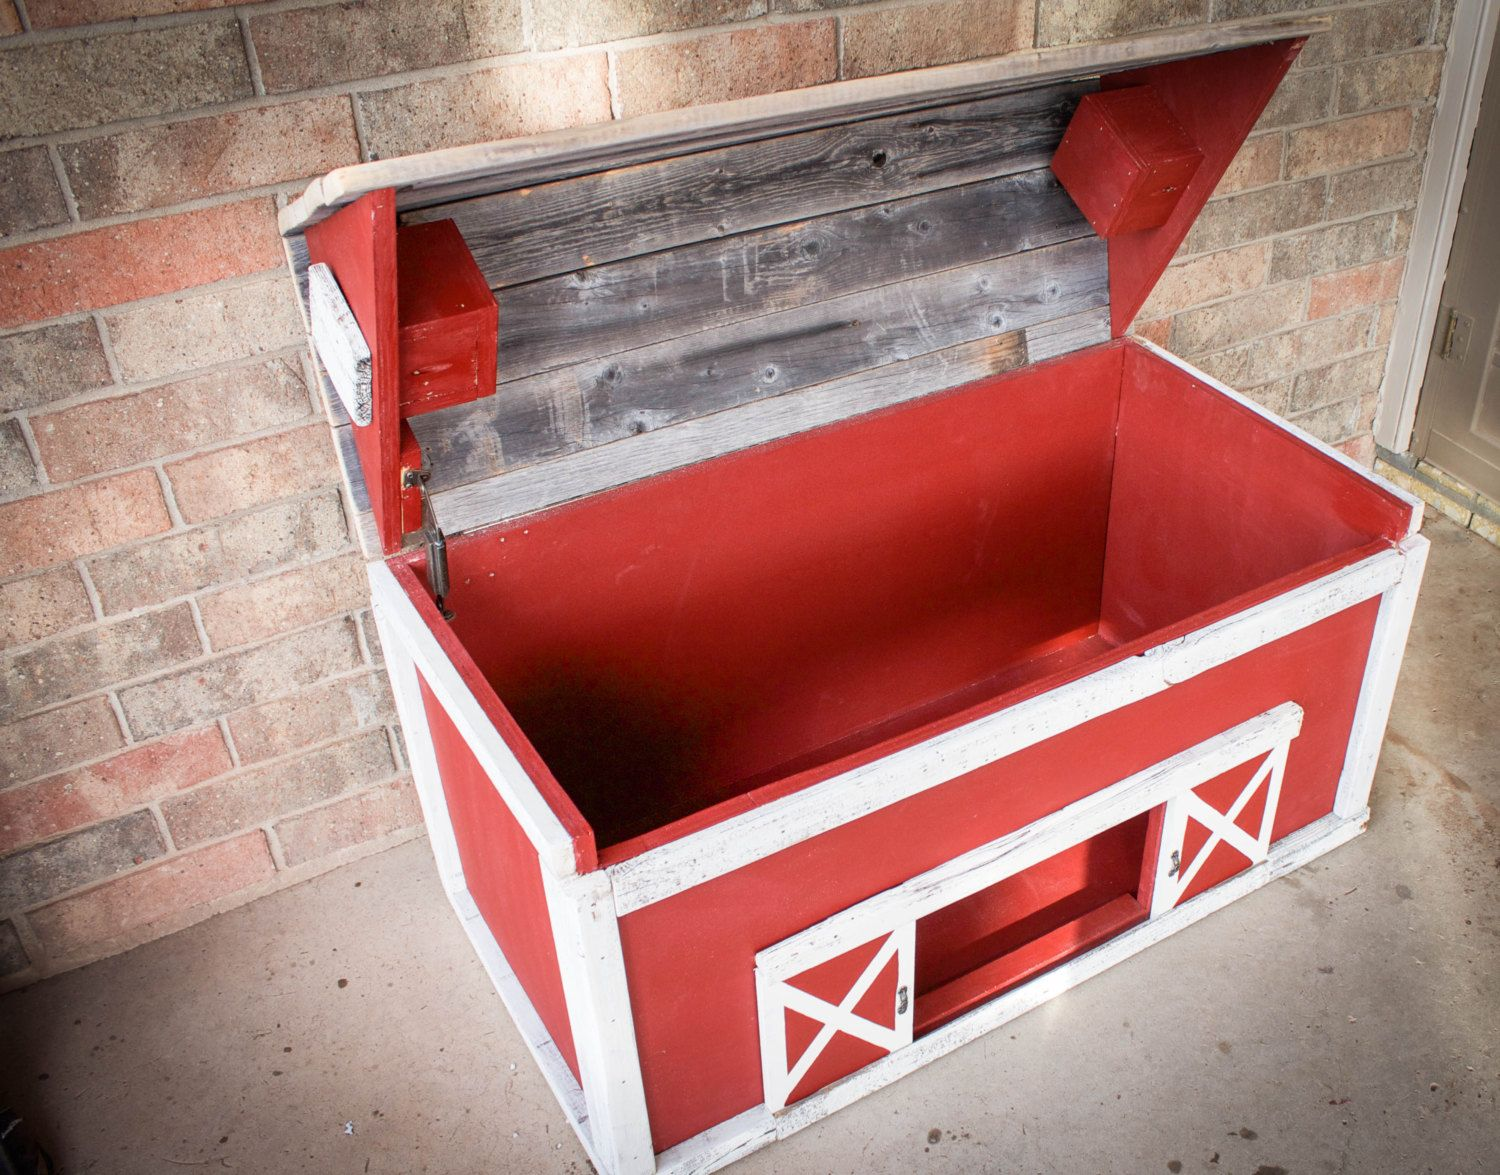 Pin By Kayla Hickey Mcneese On Home Ideas With Images Wood Toy Box Toy Barn Wood Toys